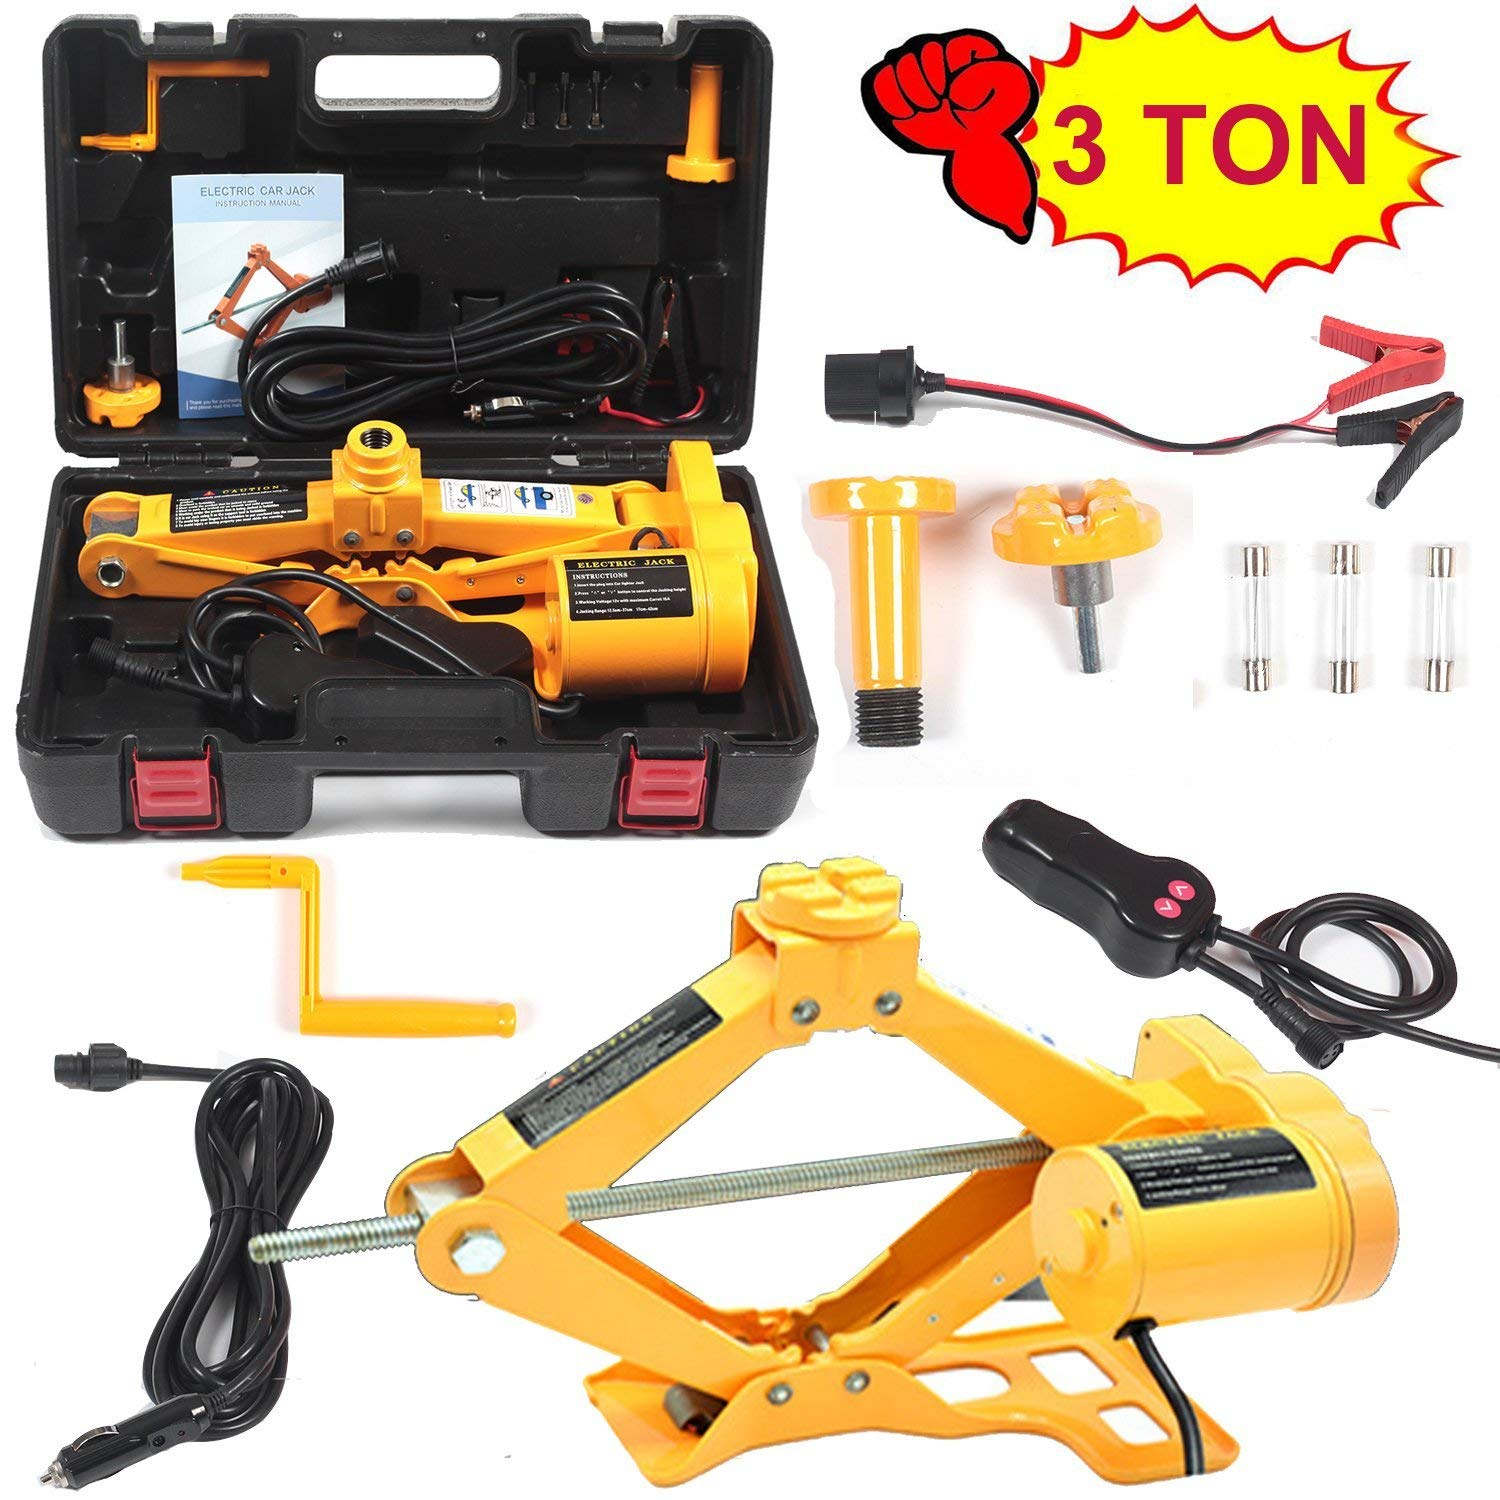 Electric Car Floor Jack 3 Ton/5 Ton All-in-one Automatic 12V Scissor Lift  Jack Set for Sedans SUV w/Double Saddles Remote Hydraulic Tire Change  Repair